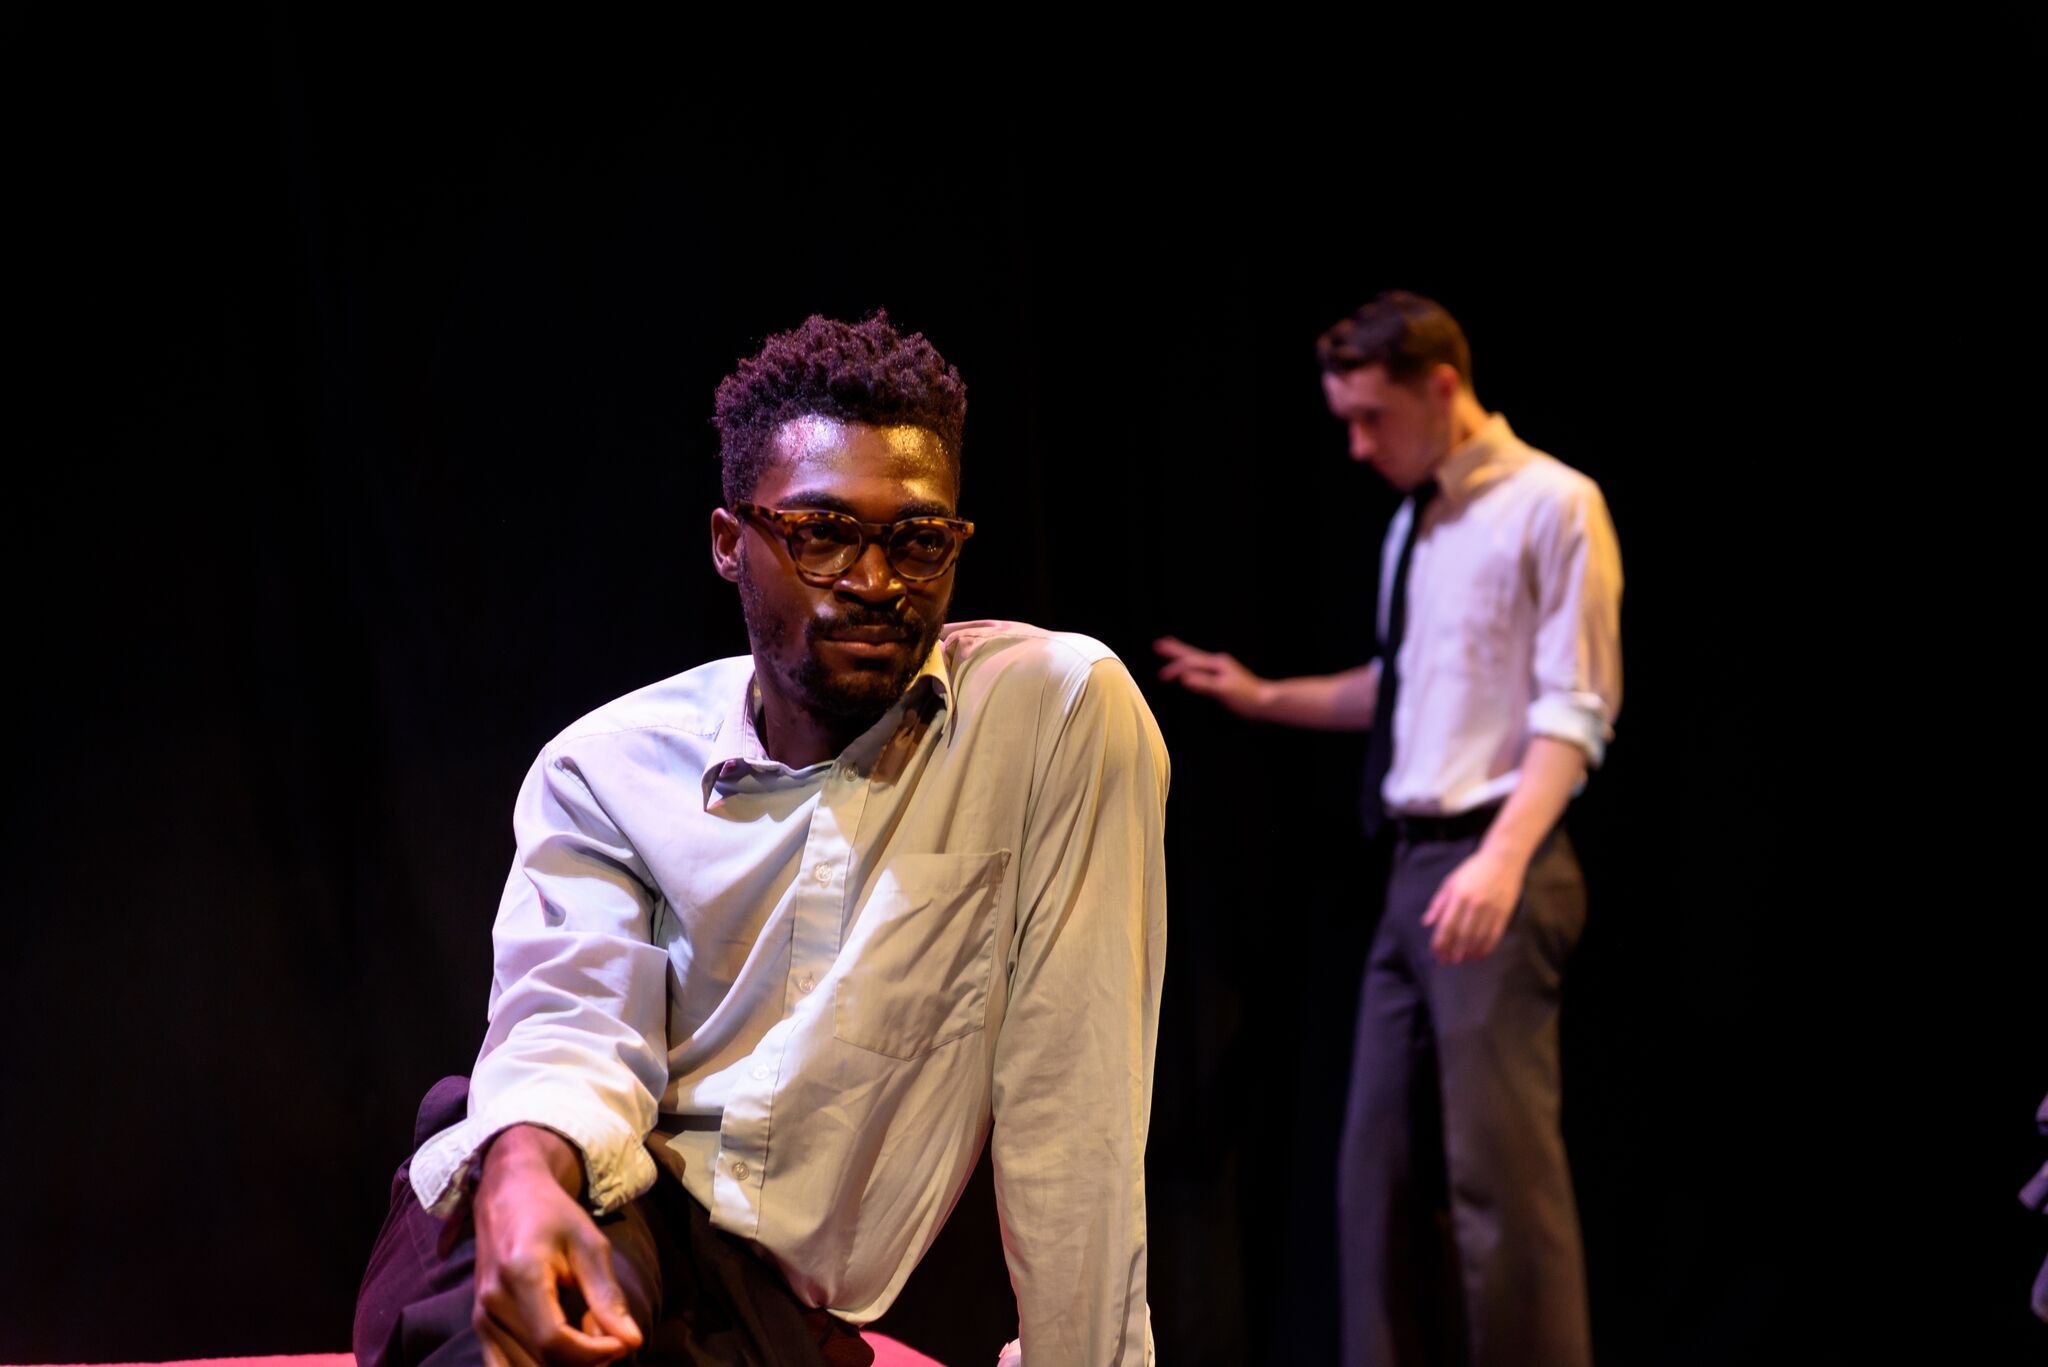 Photo by Michael Yaneff of Foreshots Photography featuring Kwaku Okyere and Conor Ling .